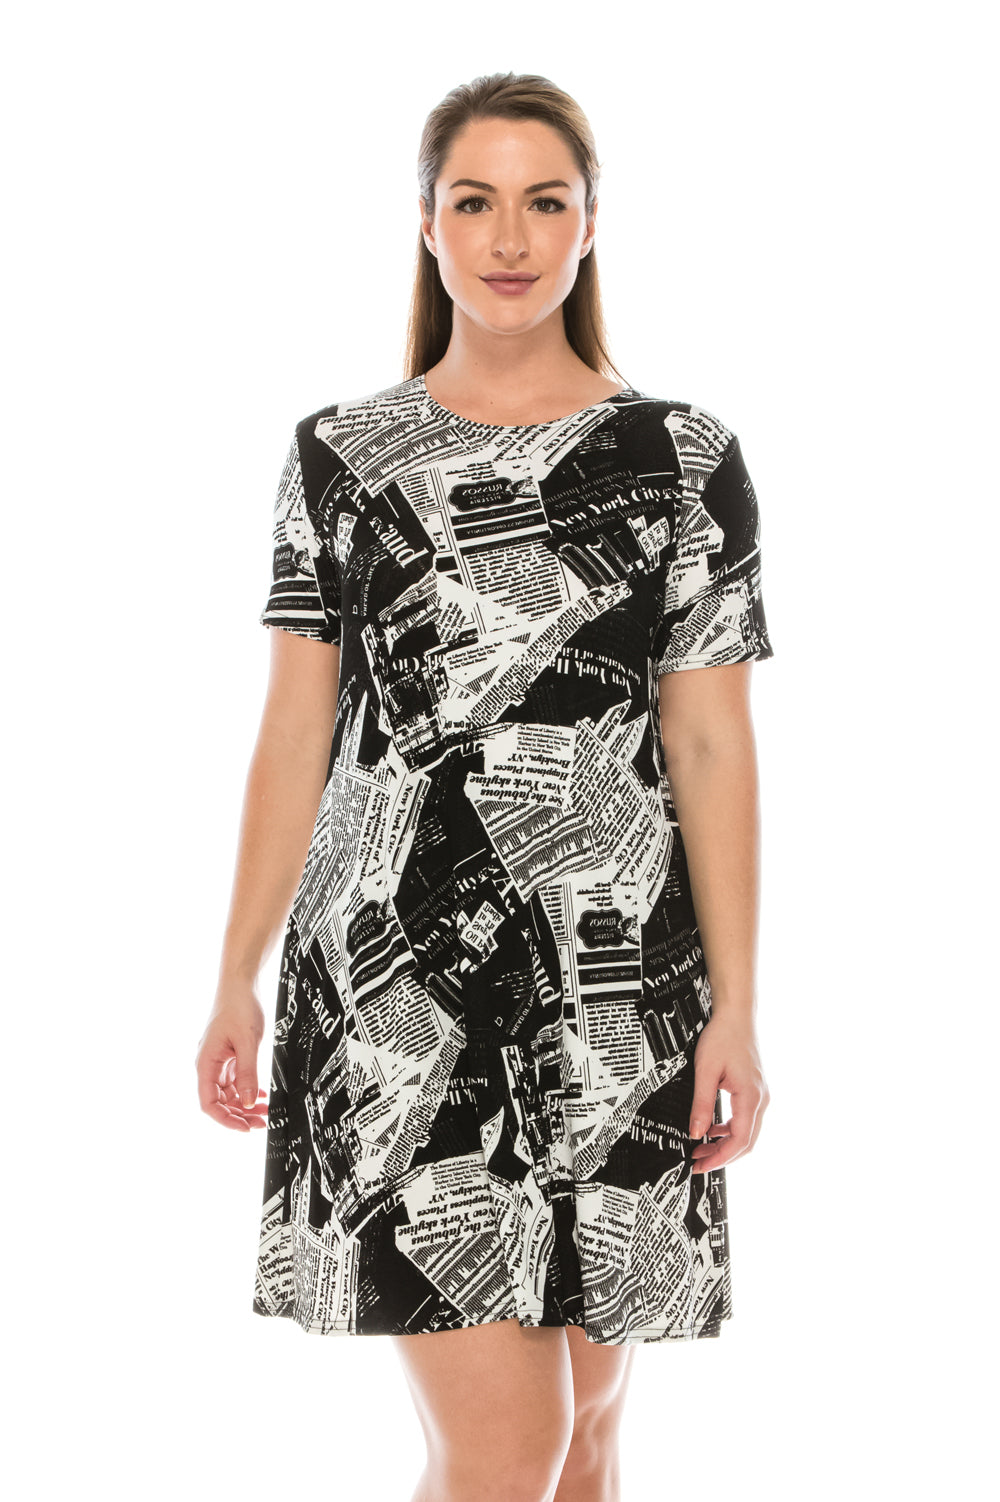 Jostar Women's Stretchy Missy Dress Short Sleeve Print, 704BN-SP-W120 - Jostar Online